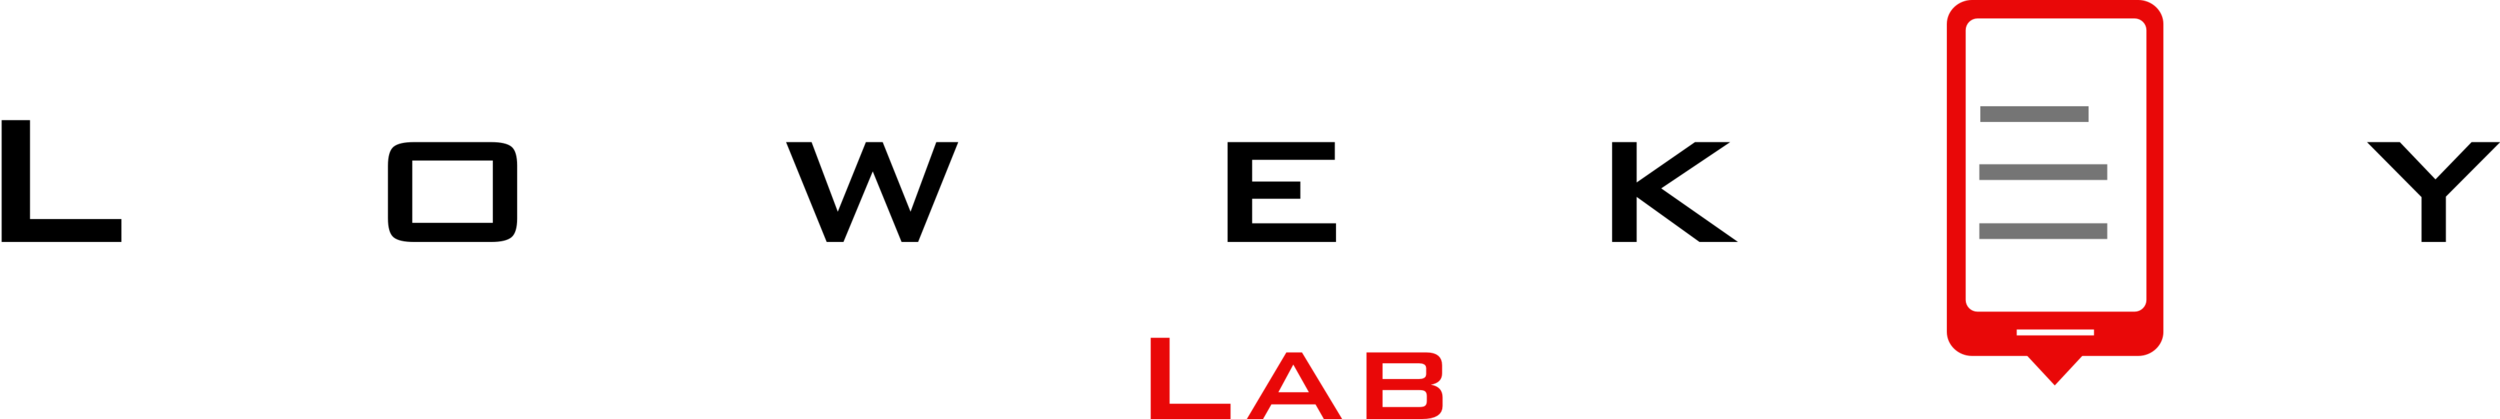 Lowekey Lab is... - Lowekey Lab is a week-long mobile technology camp for high school students that connects the best ideas, talent and resources across sectors to empower the next generation of entrepreneurs, app developers, engineers and innovators.